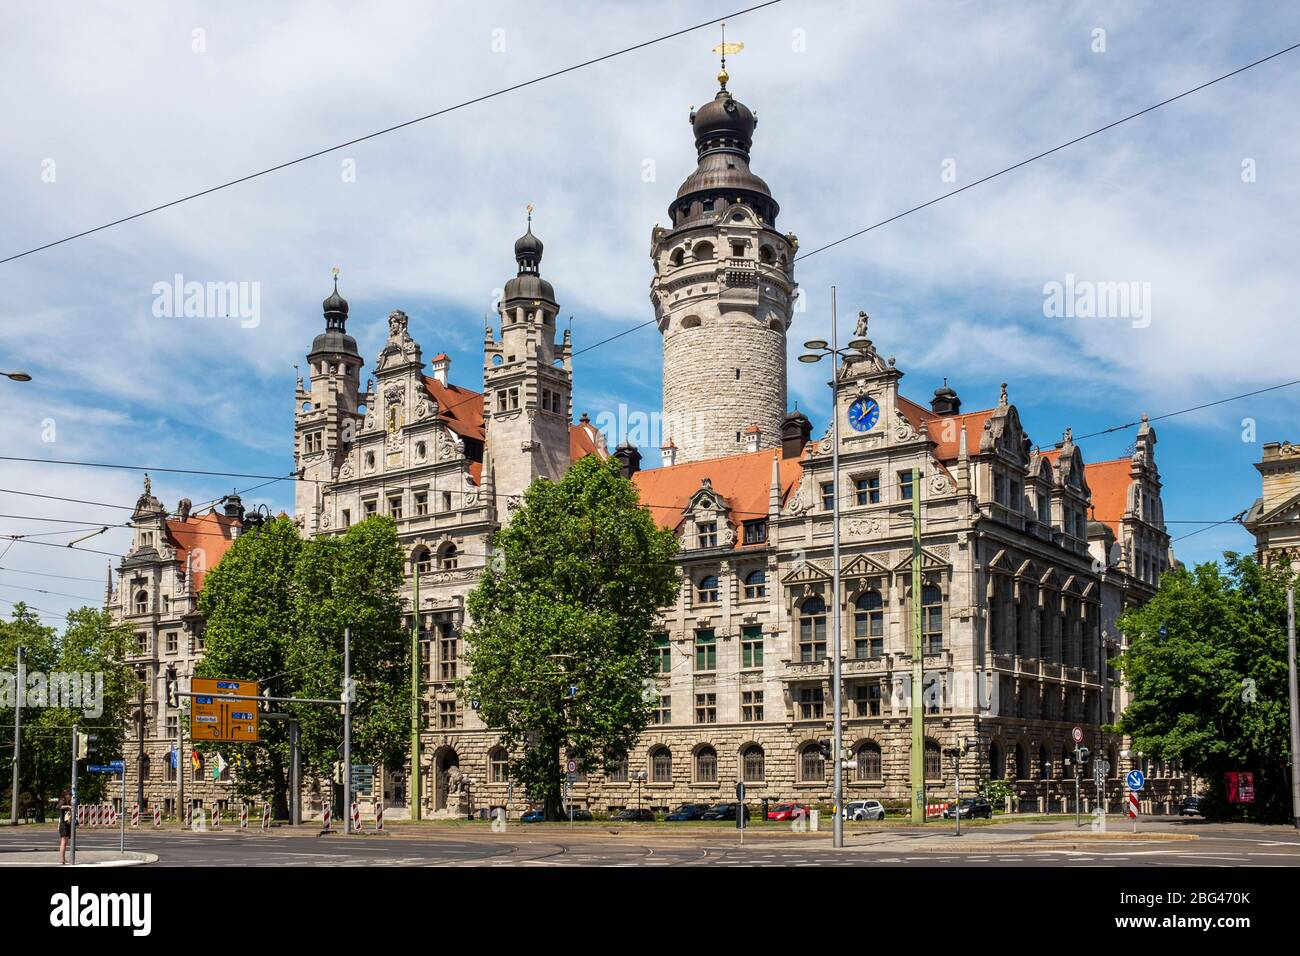 Leipzig New Town Hall Centre Of Administration For The City Of Leipzig Germany Stock Photo Alamy